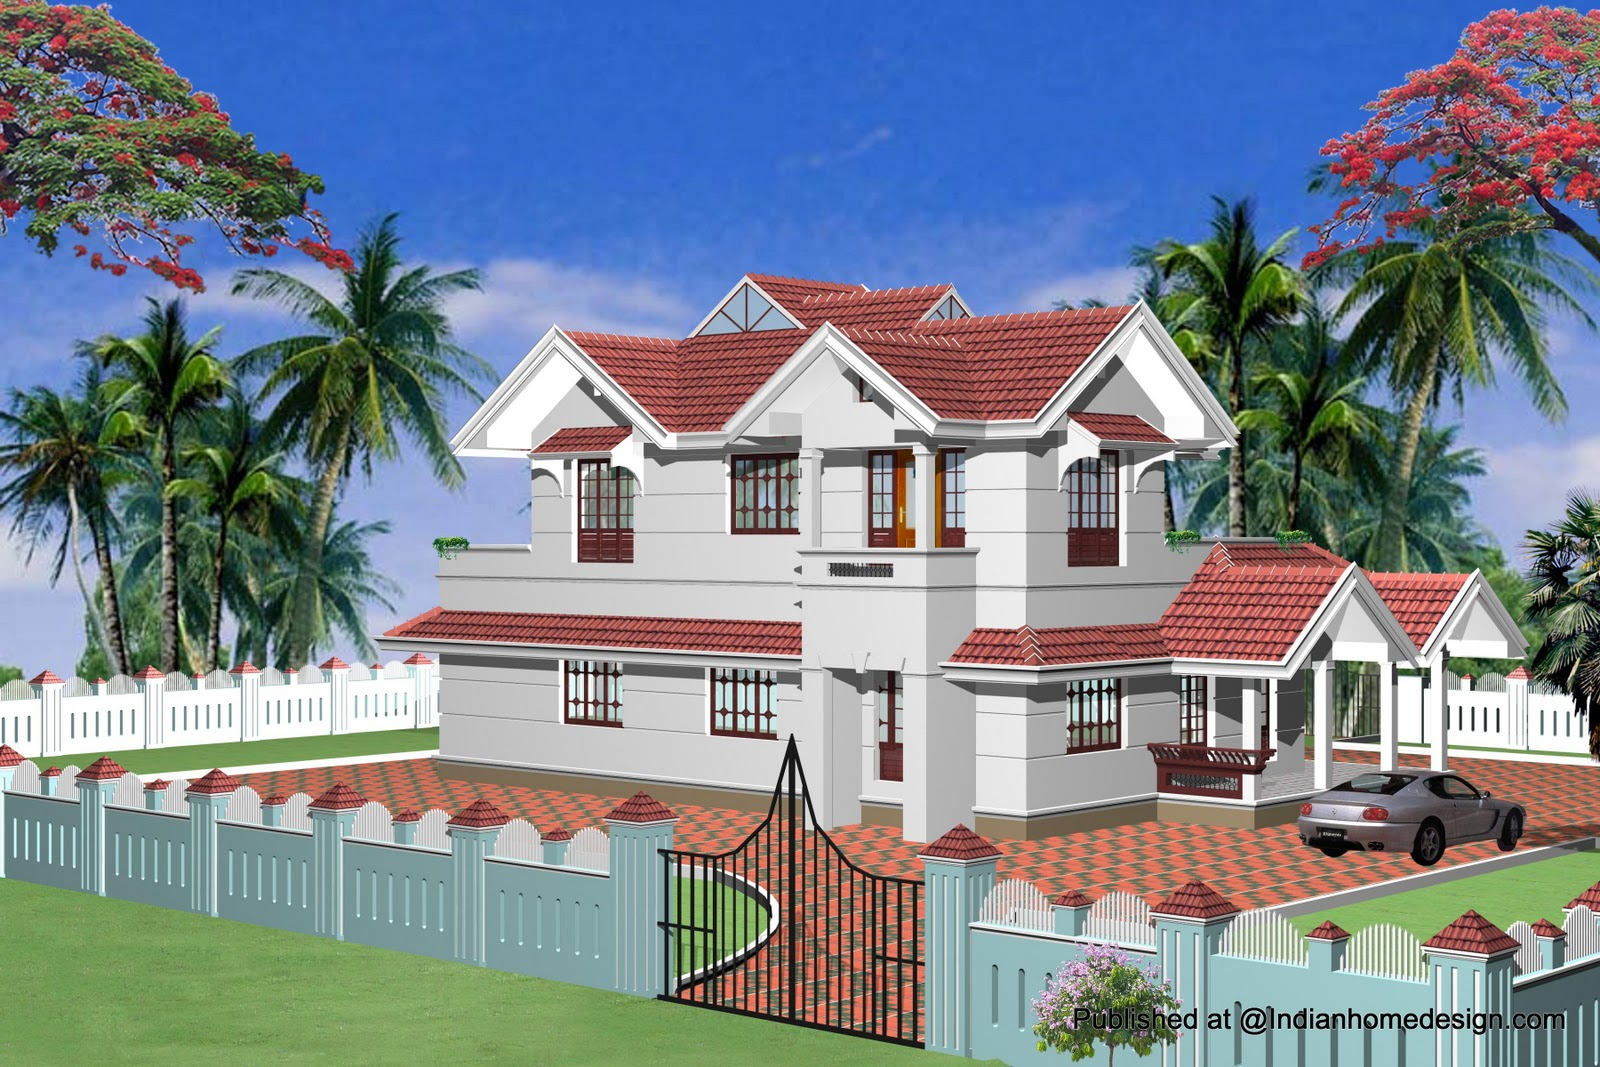 Architectural house plans india omahdesigns net Indian model house plan design